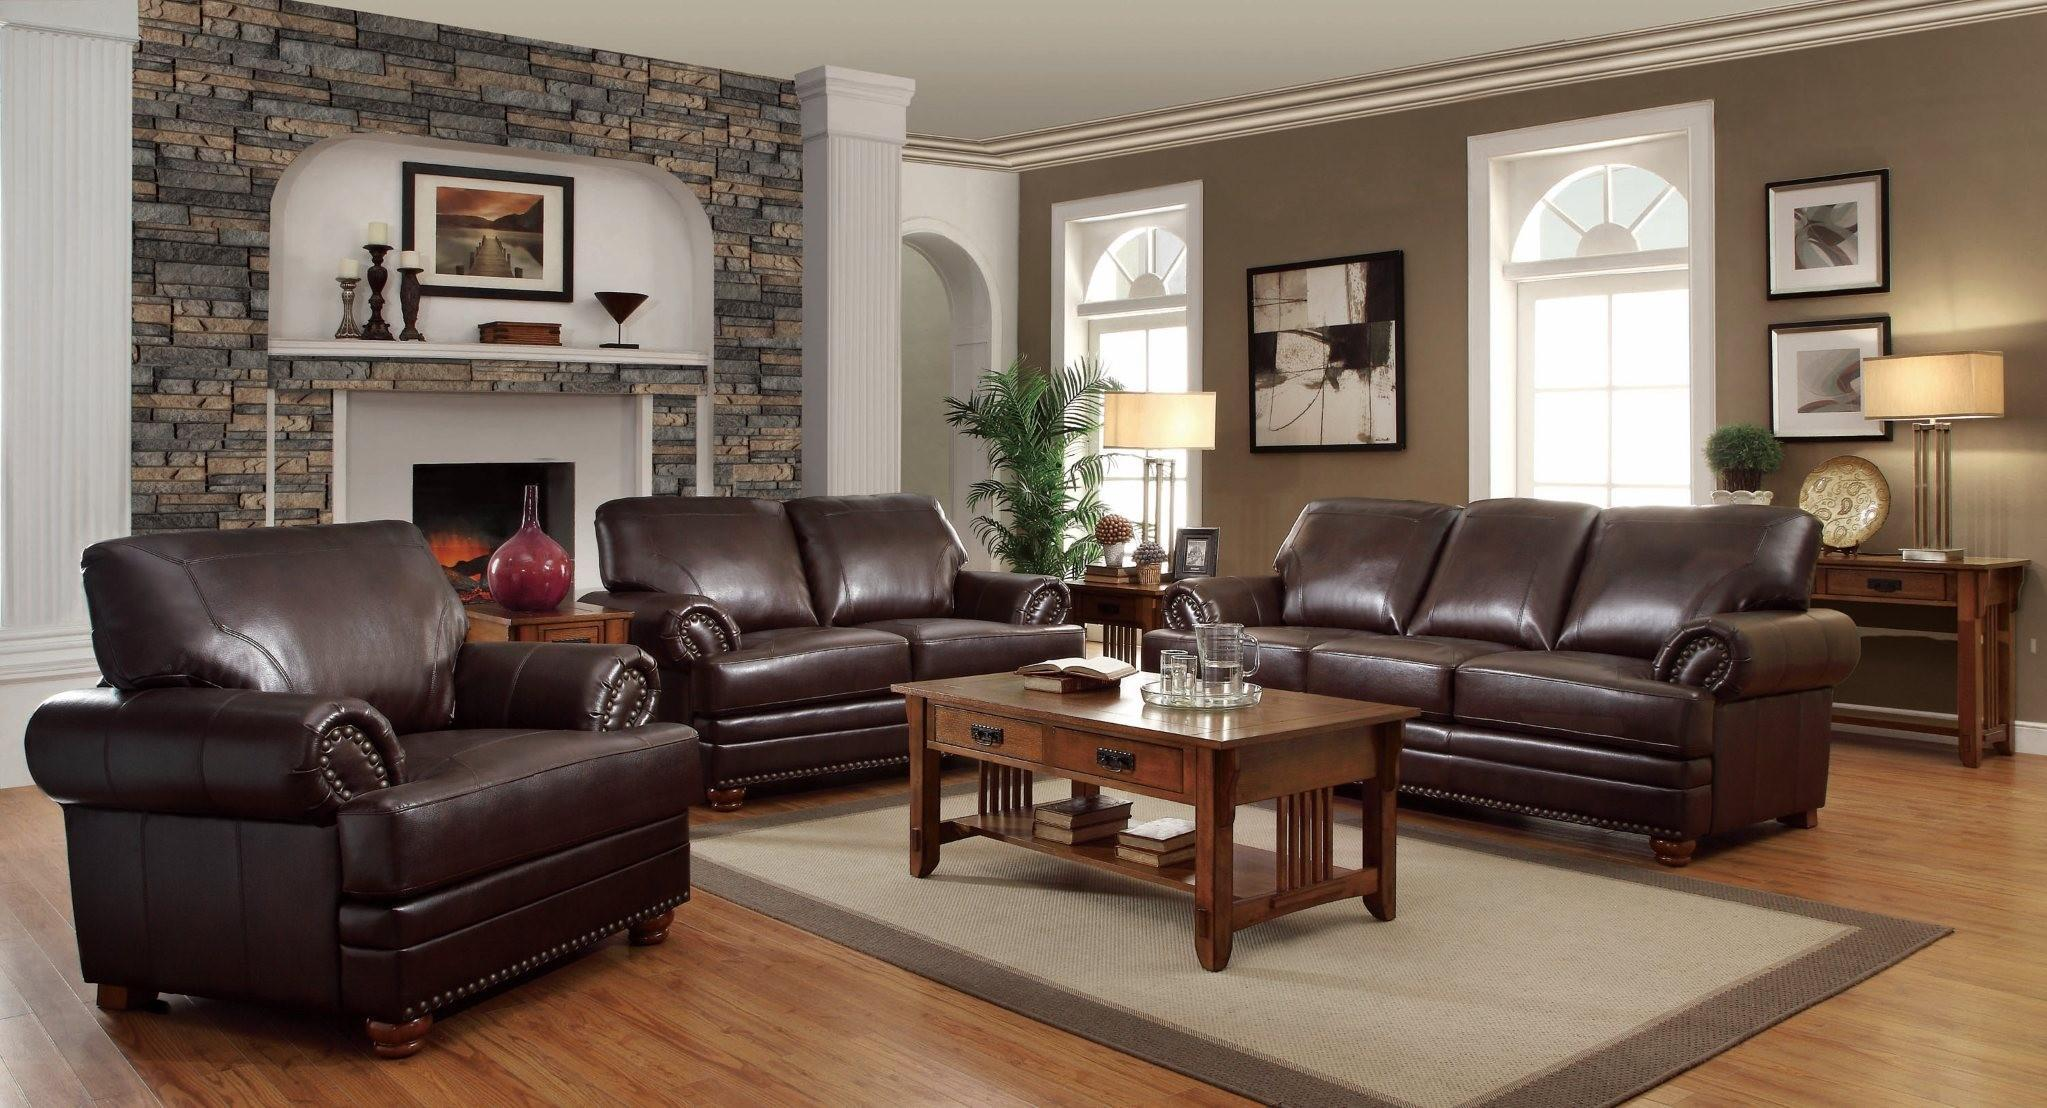 Living Room With Brown Leather Couch Coaster Colton Traditional Styled Living Room Chair With